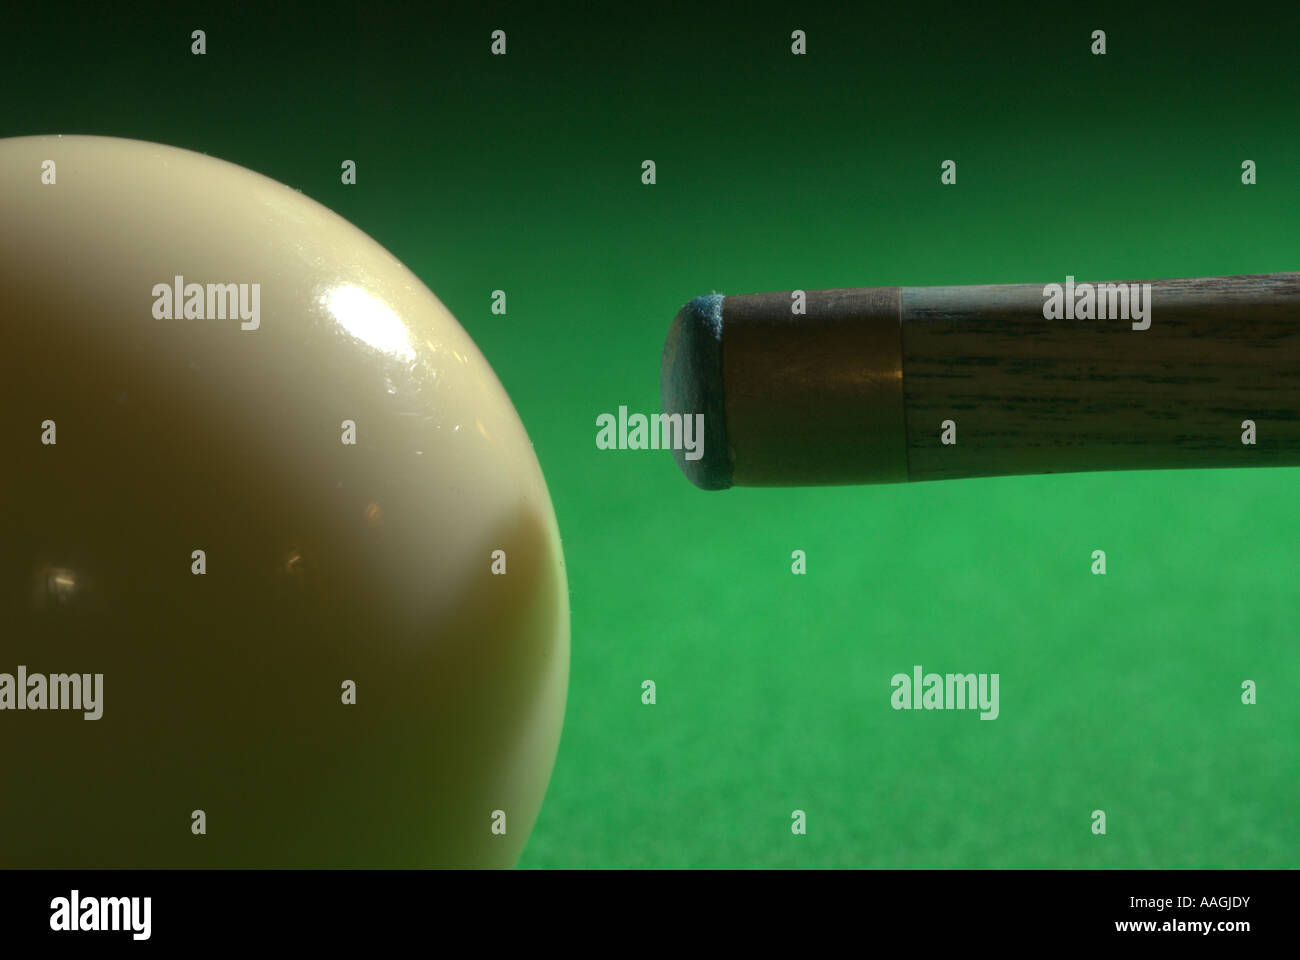 Cue ball and tip on the green baize of a snooker table UK - Stock Image